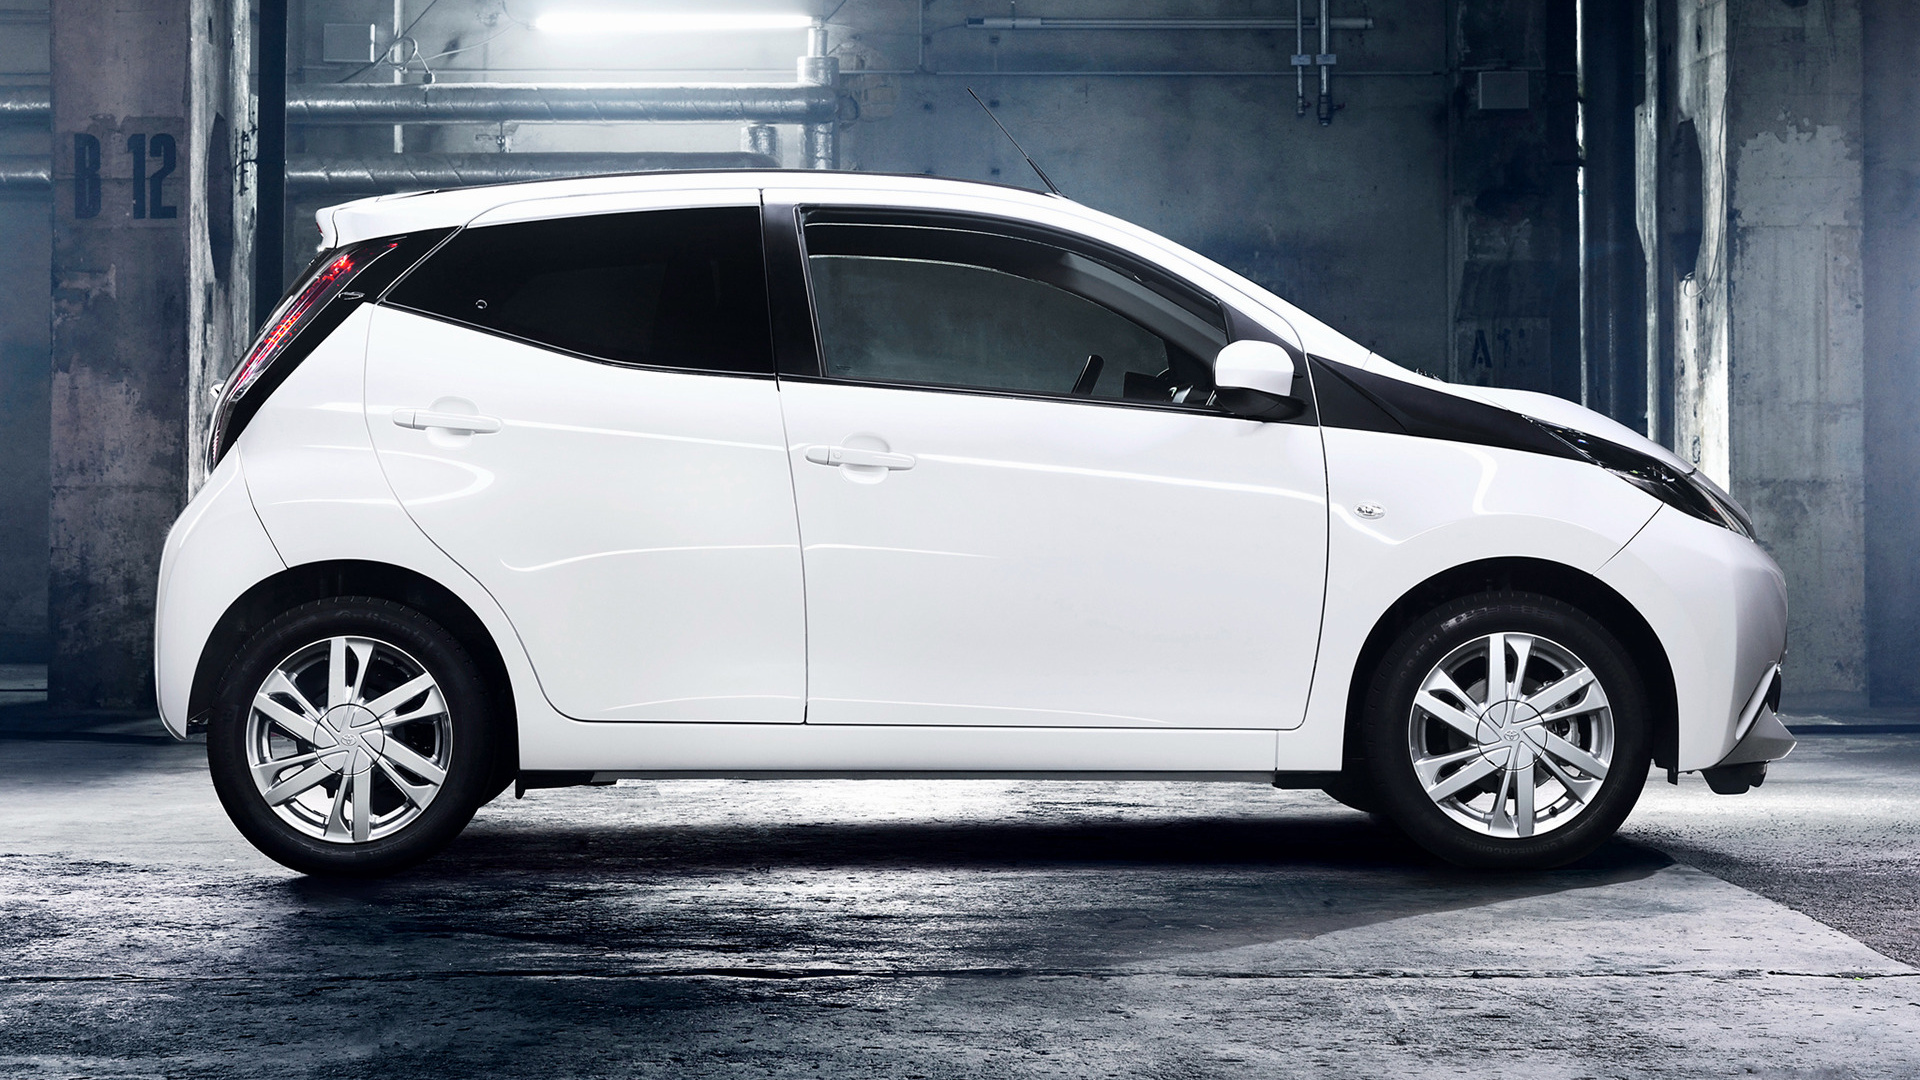 2014 Toyota Aygo x play 5 door   Wallpapers and HD Images Car Pixel 1920x1080